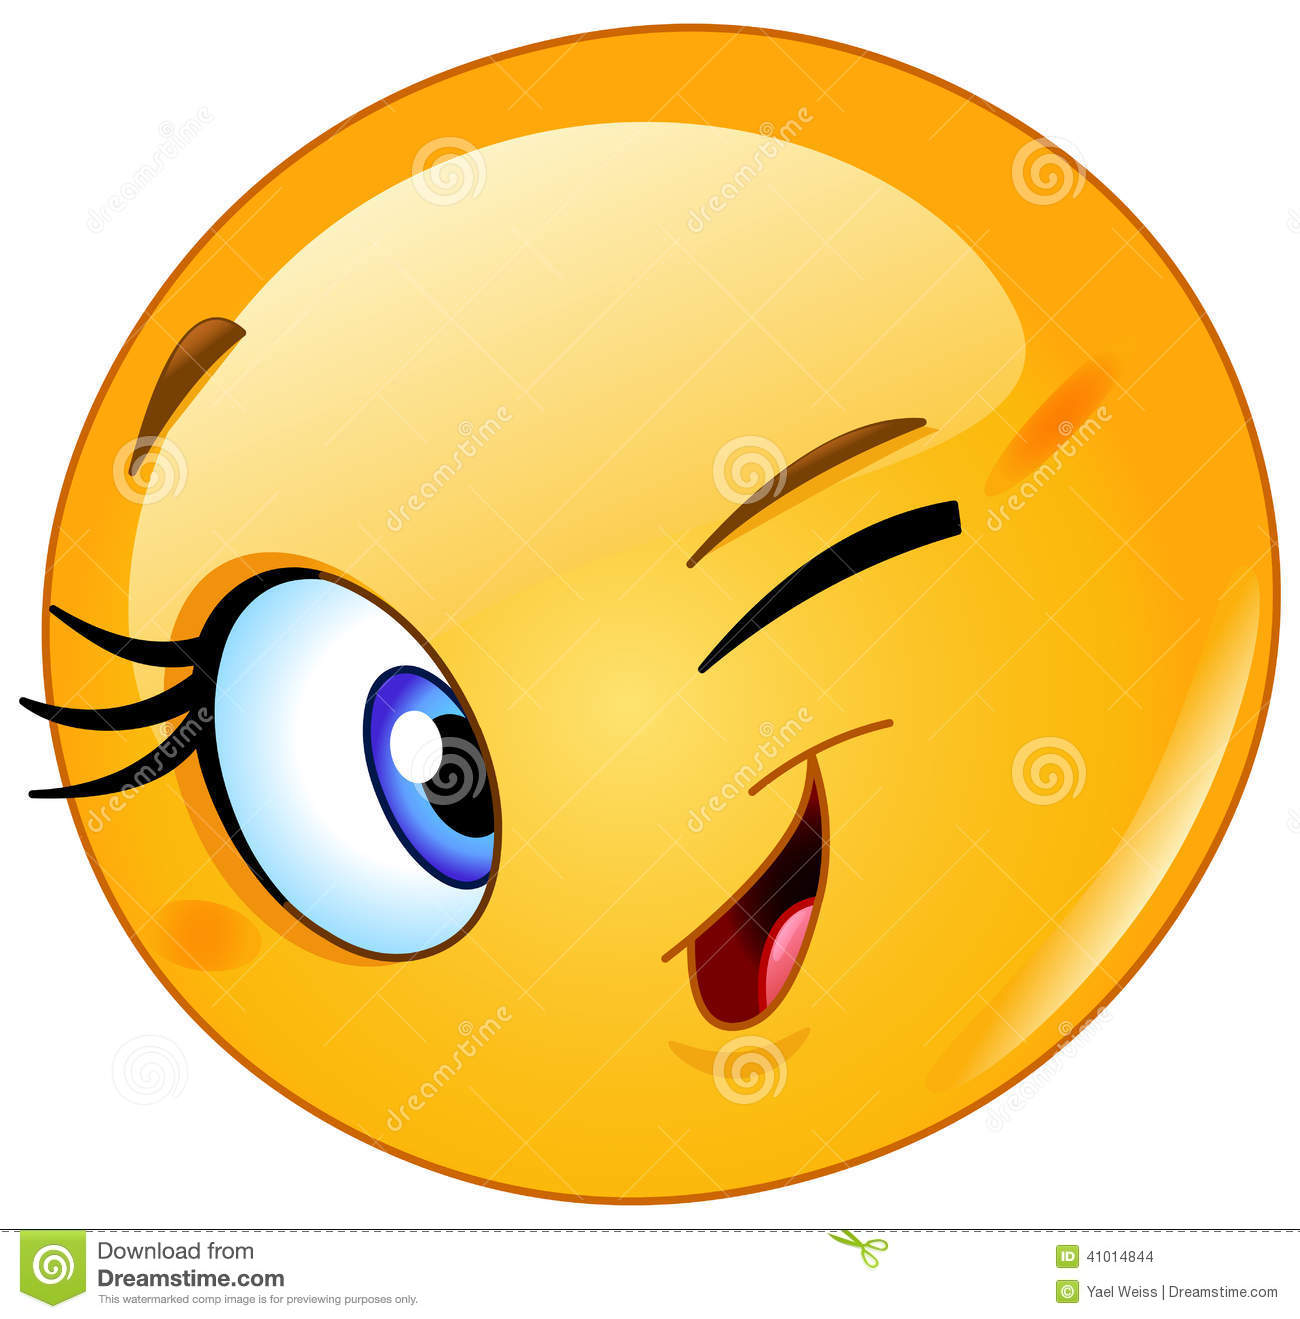 Female emoticon winking stock vector. Illustration of ...